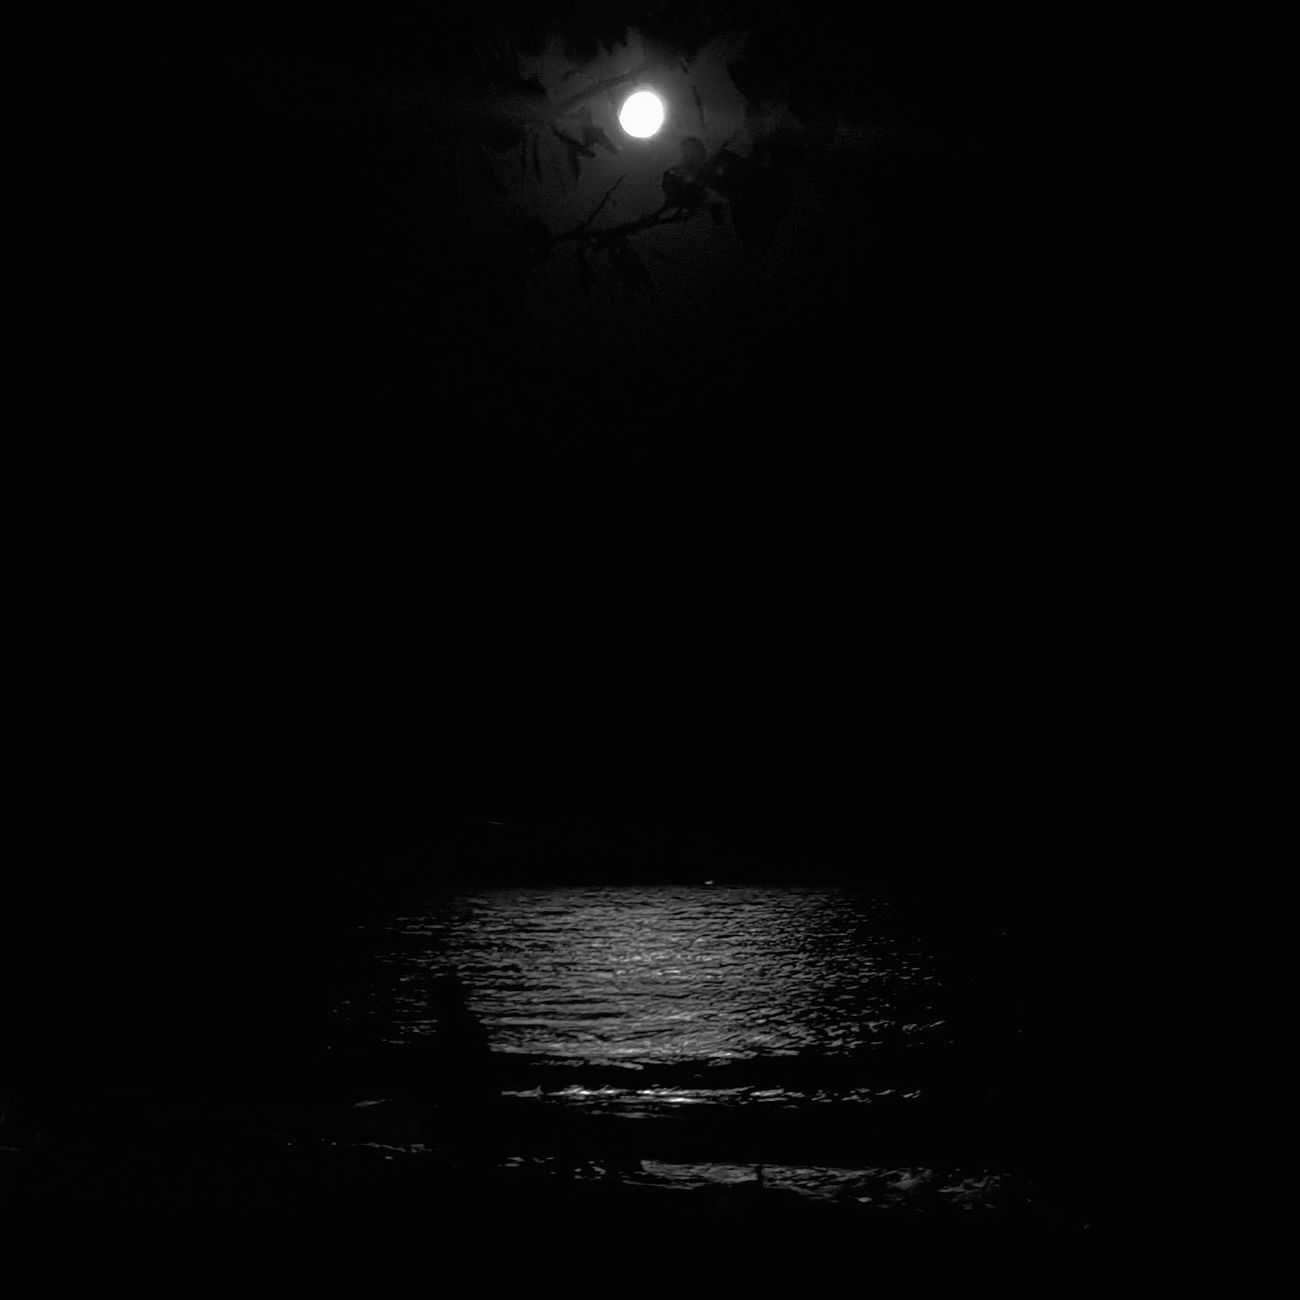 Taking Photos Blackandwhitephotography Sea Night Photography Moonlight Streetphotography Beachphotography Photooftheday Night Photography Photographer